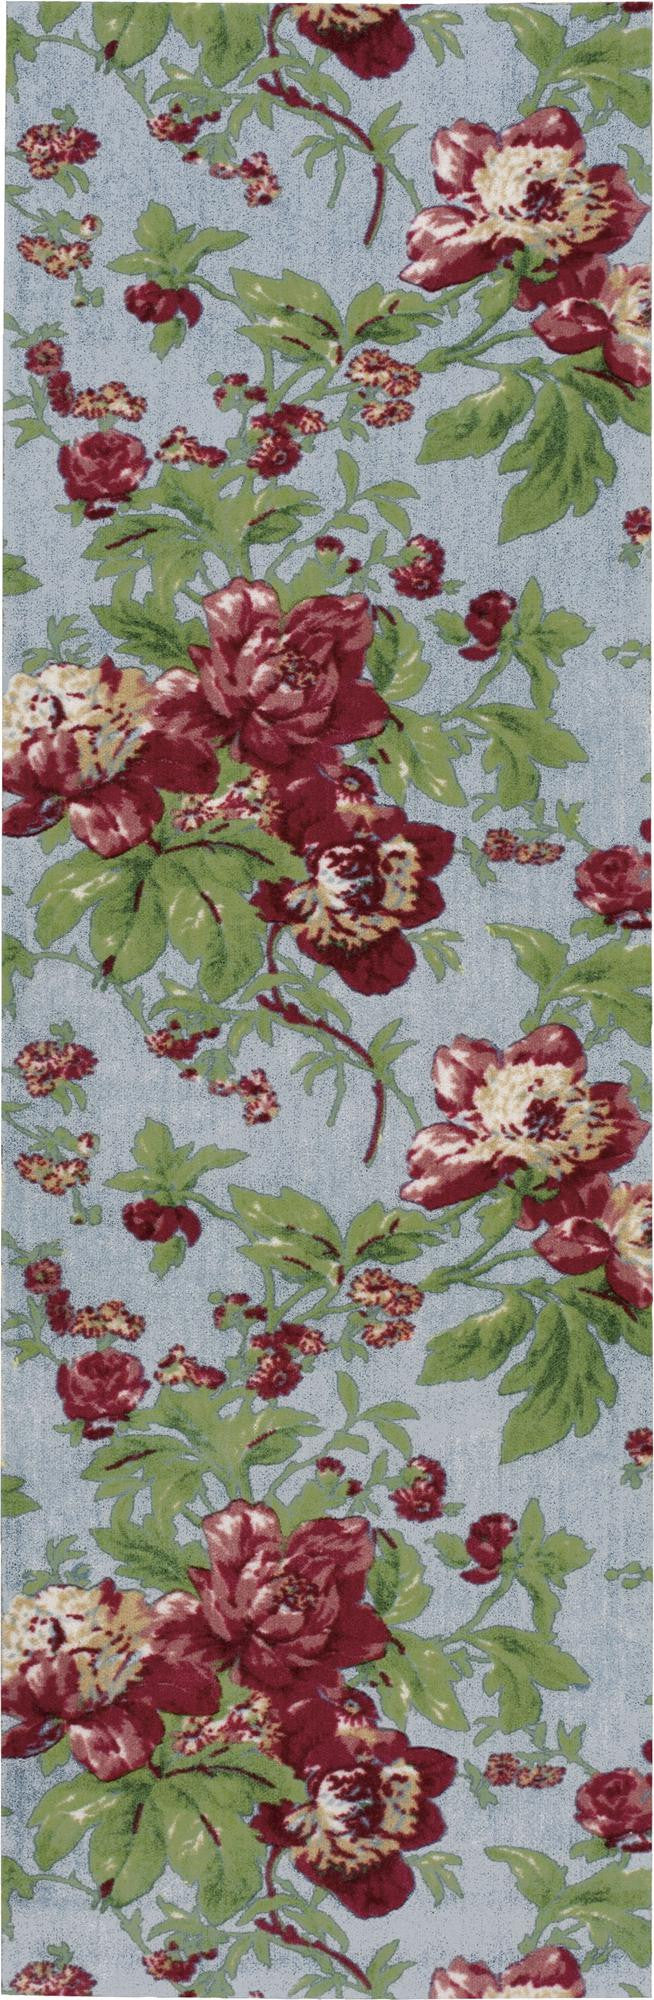 Waverly Artisanal Delight Forever Yours Spring Area Rug By Nourison WAD01 SPRNG